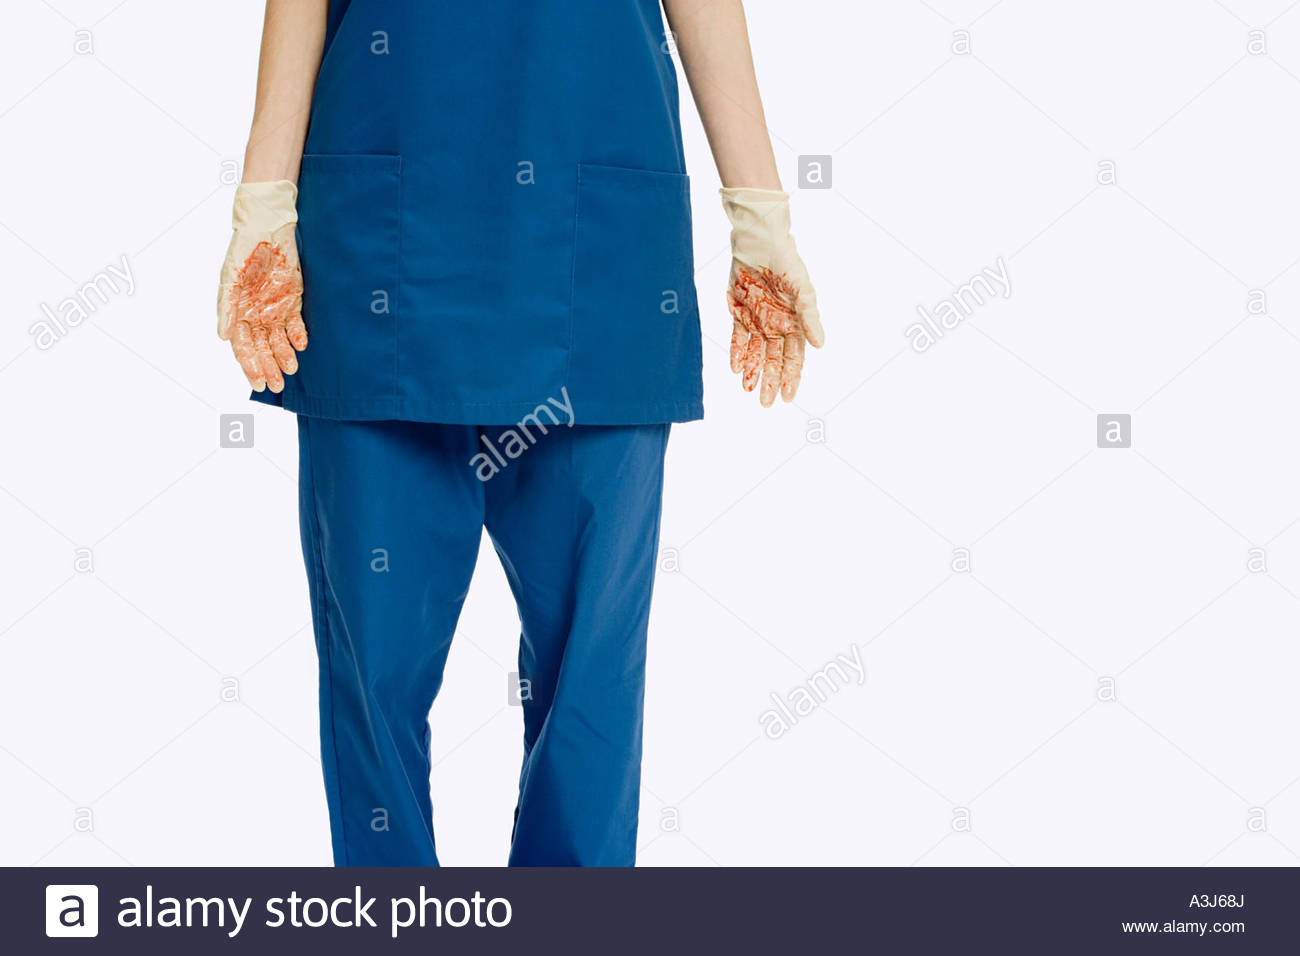 Surgeon wearing surgical gloves covered in blood - Stock Image